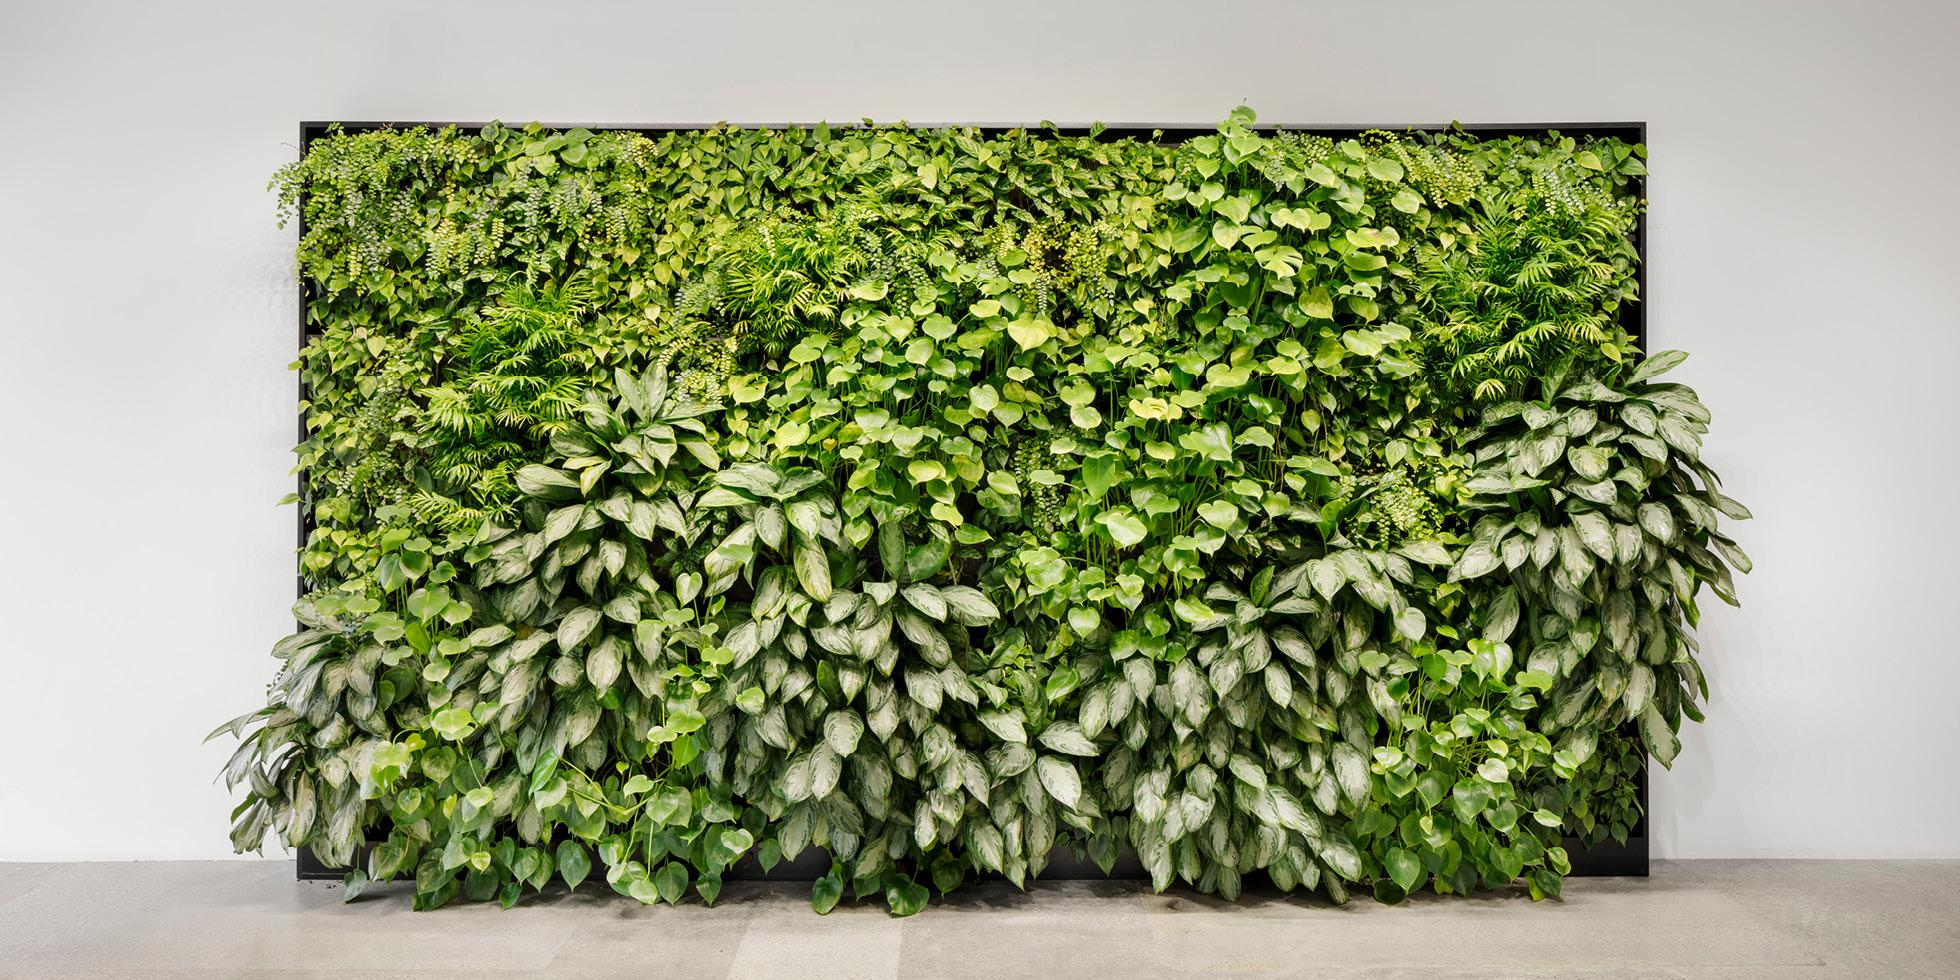 Zoox Living Wall by Habitat Horticulture - View 4